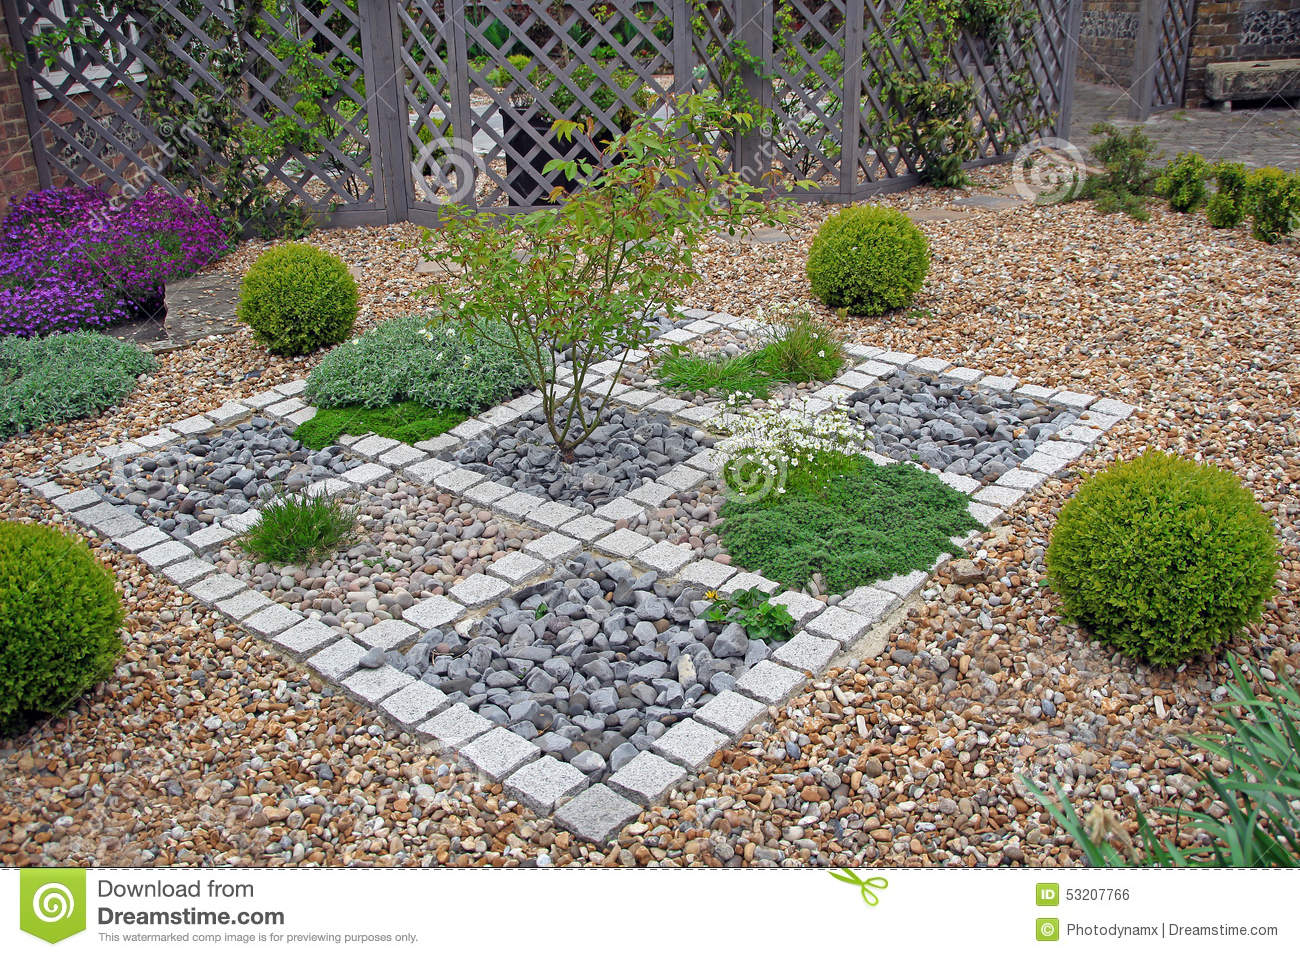 High Quality Royalty Free Stock Photo. Download Ornate Zen Garden ...